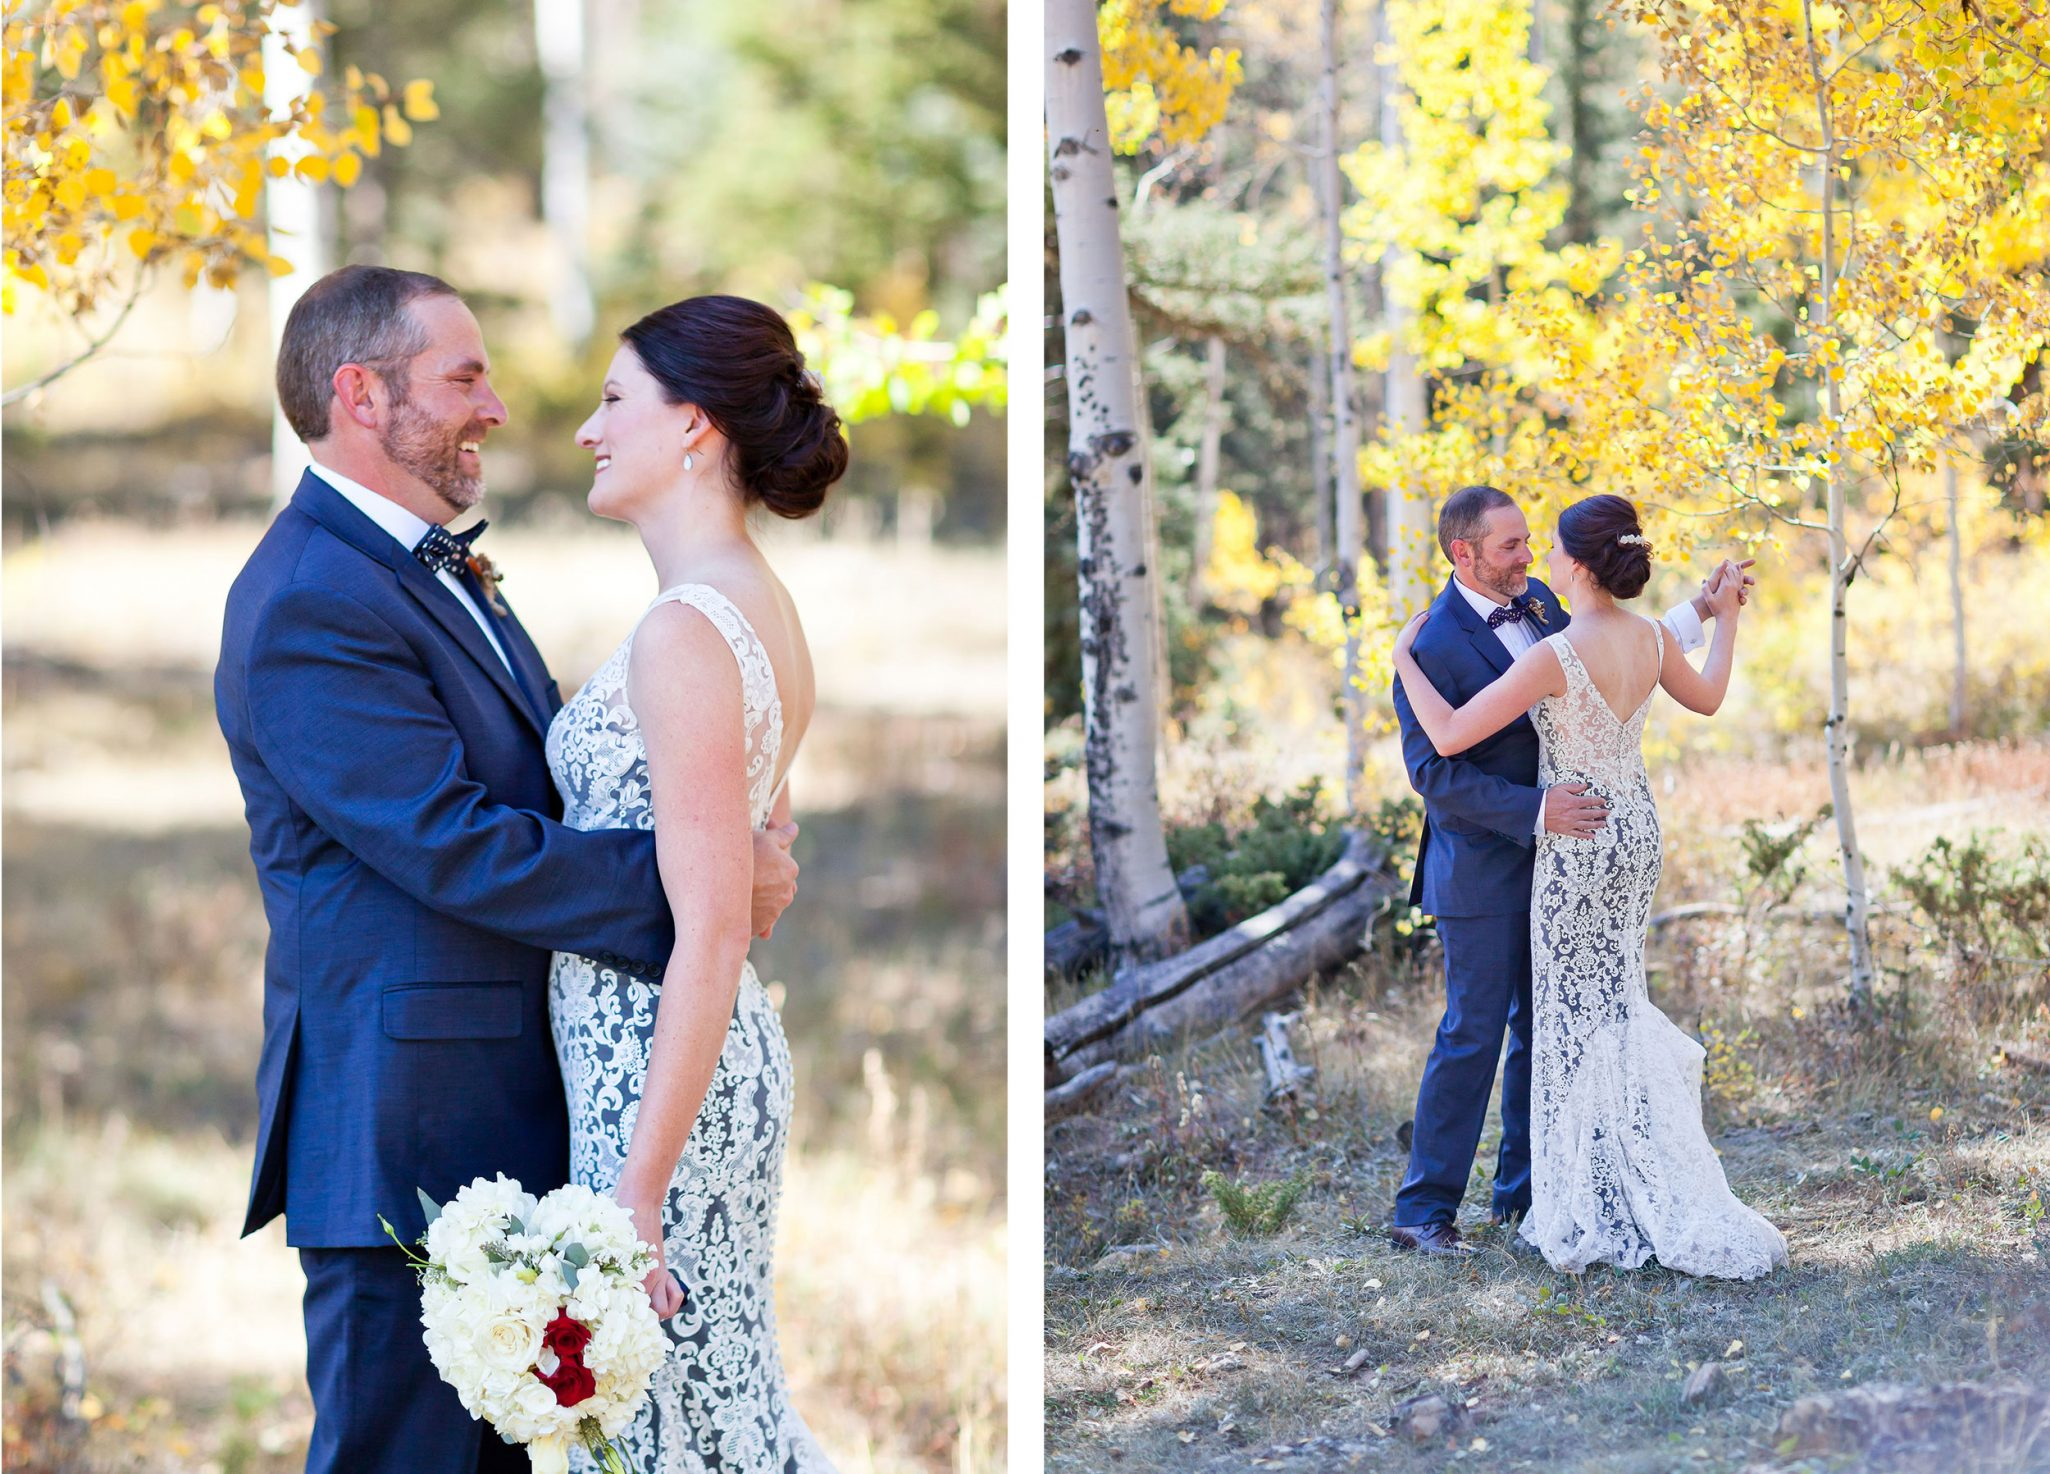 A Fall wedding at Purgatory Resort, Durango, Colorado